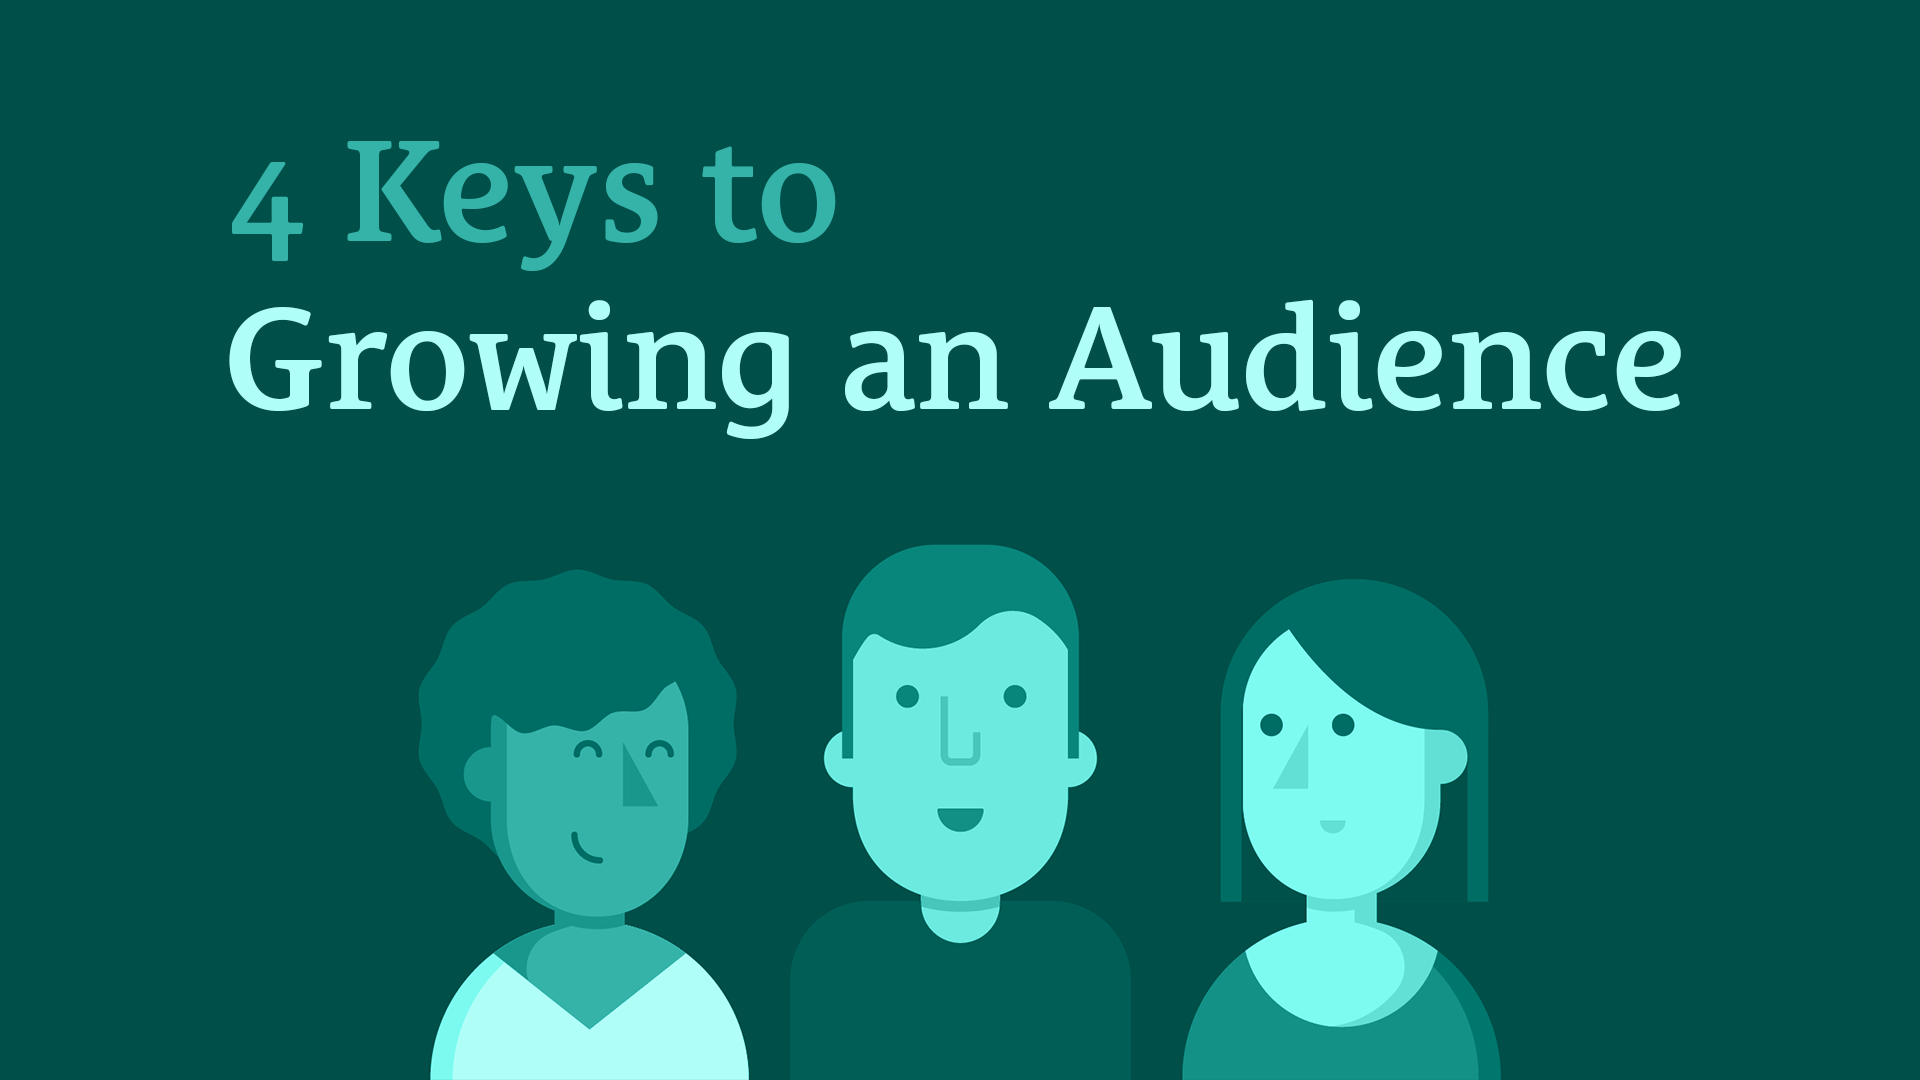 4 Keys to Growing an Audience